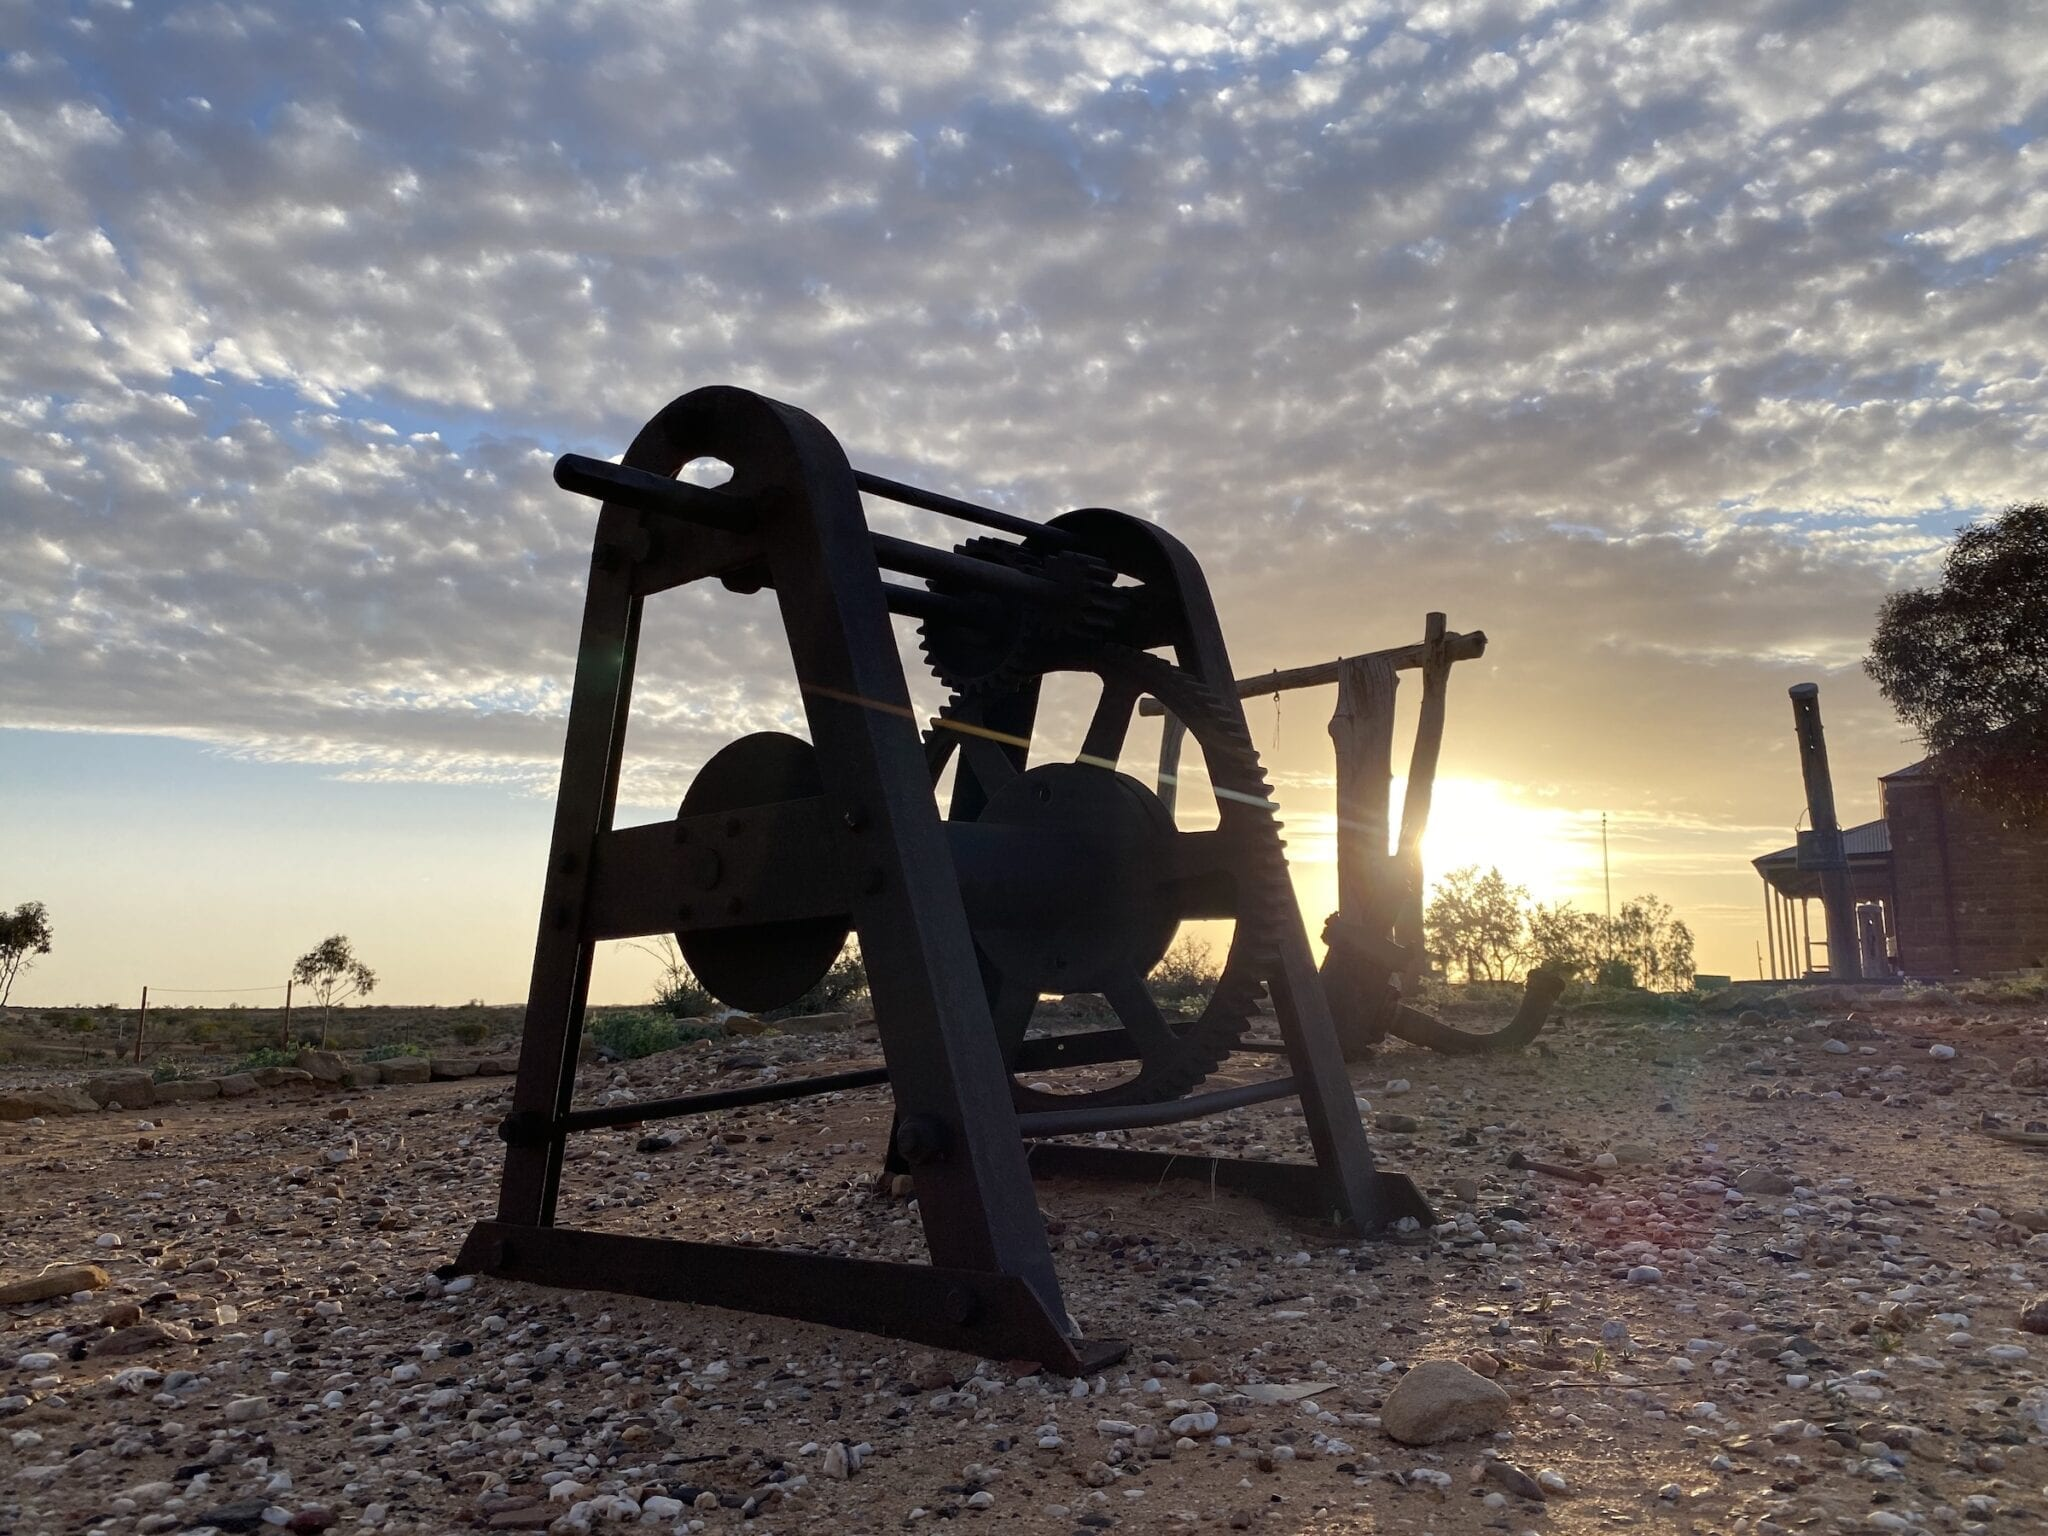 An old hand winch silhouetted by the afternoon sun. Milparinka NSW.